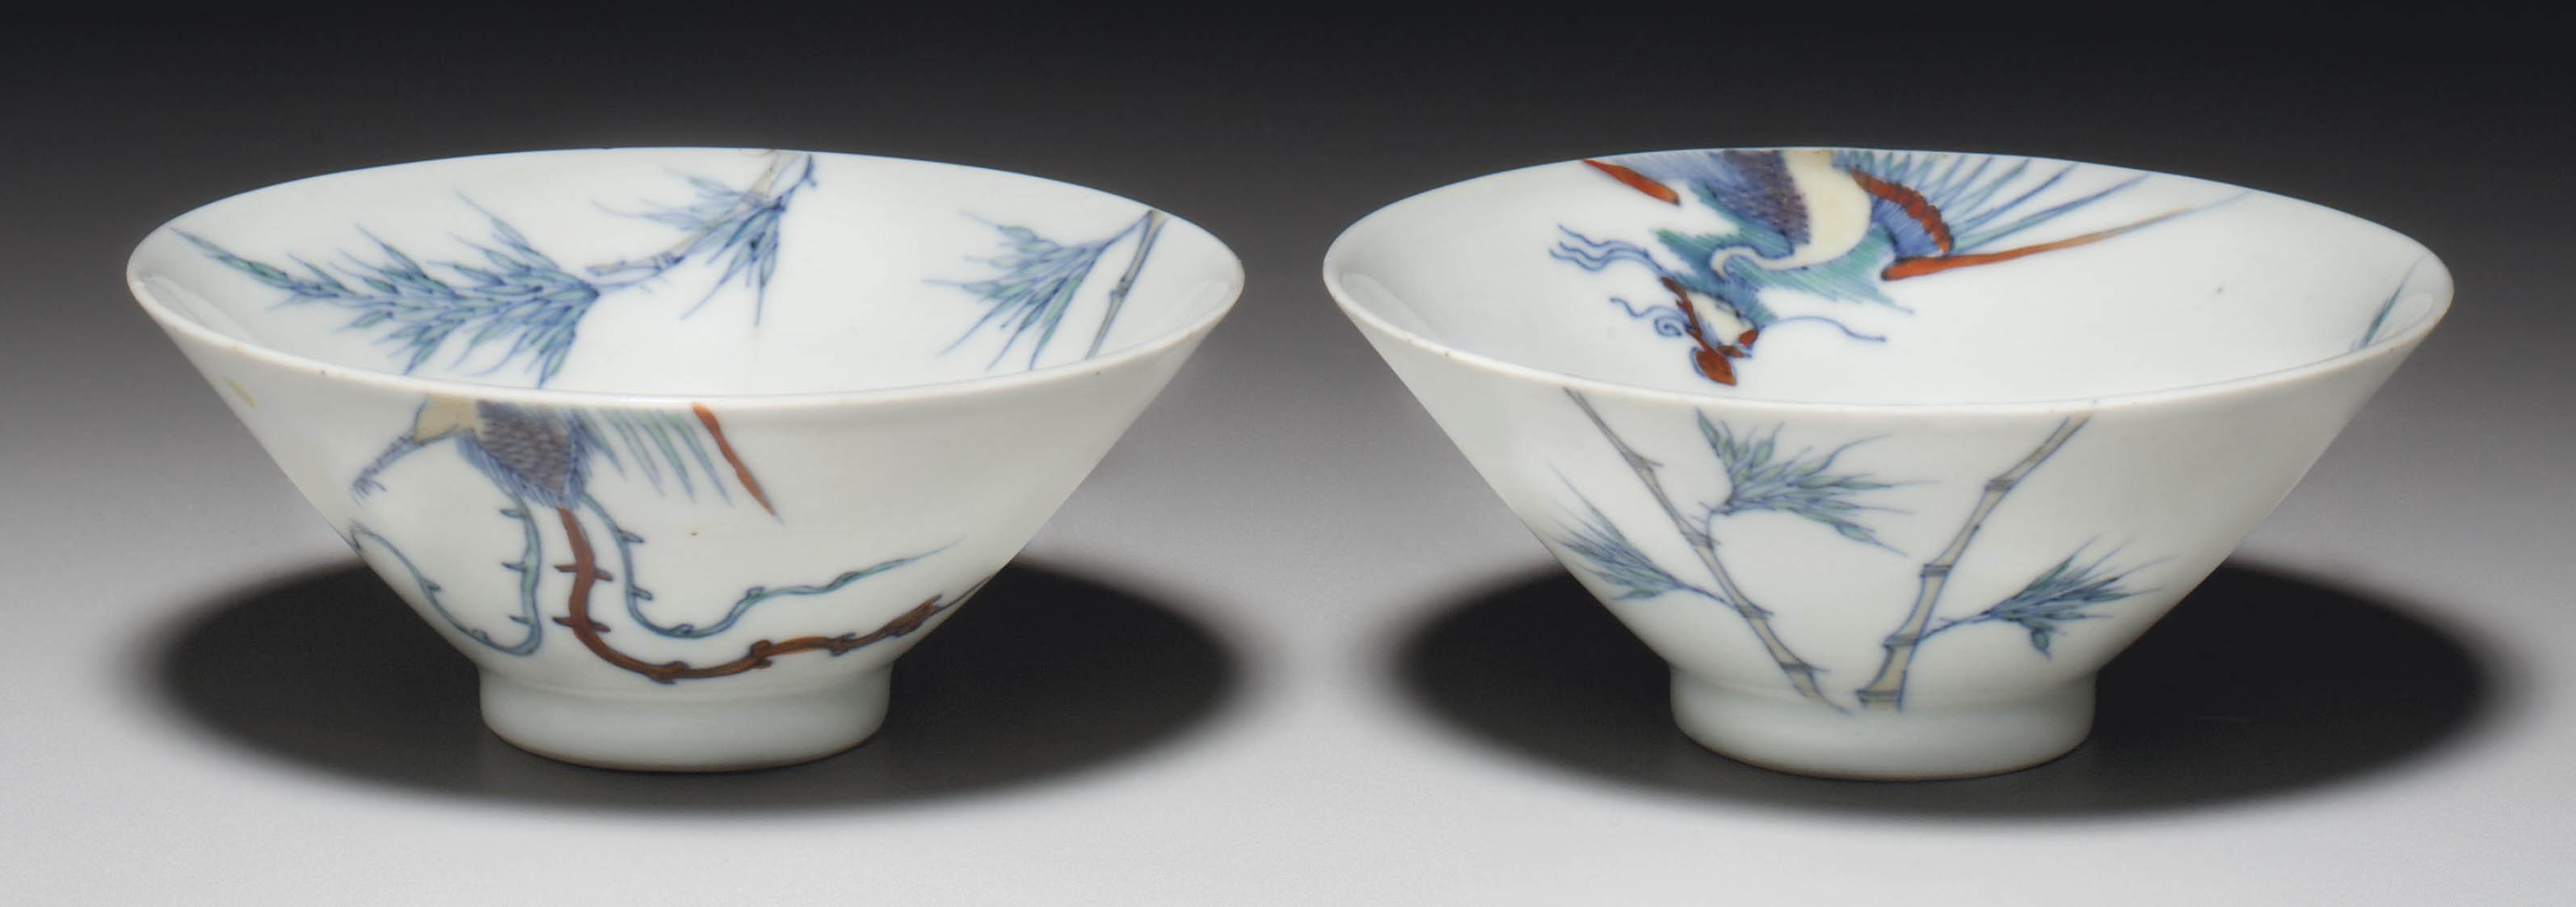 A PAIR OF DOUCAI CONICAL BOWLS